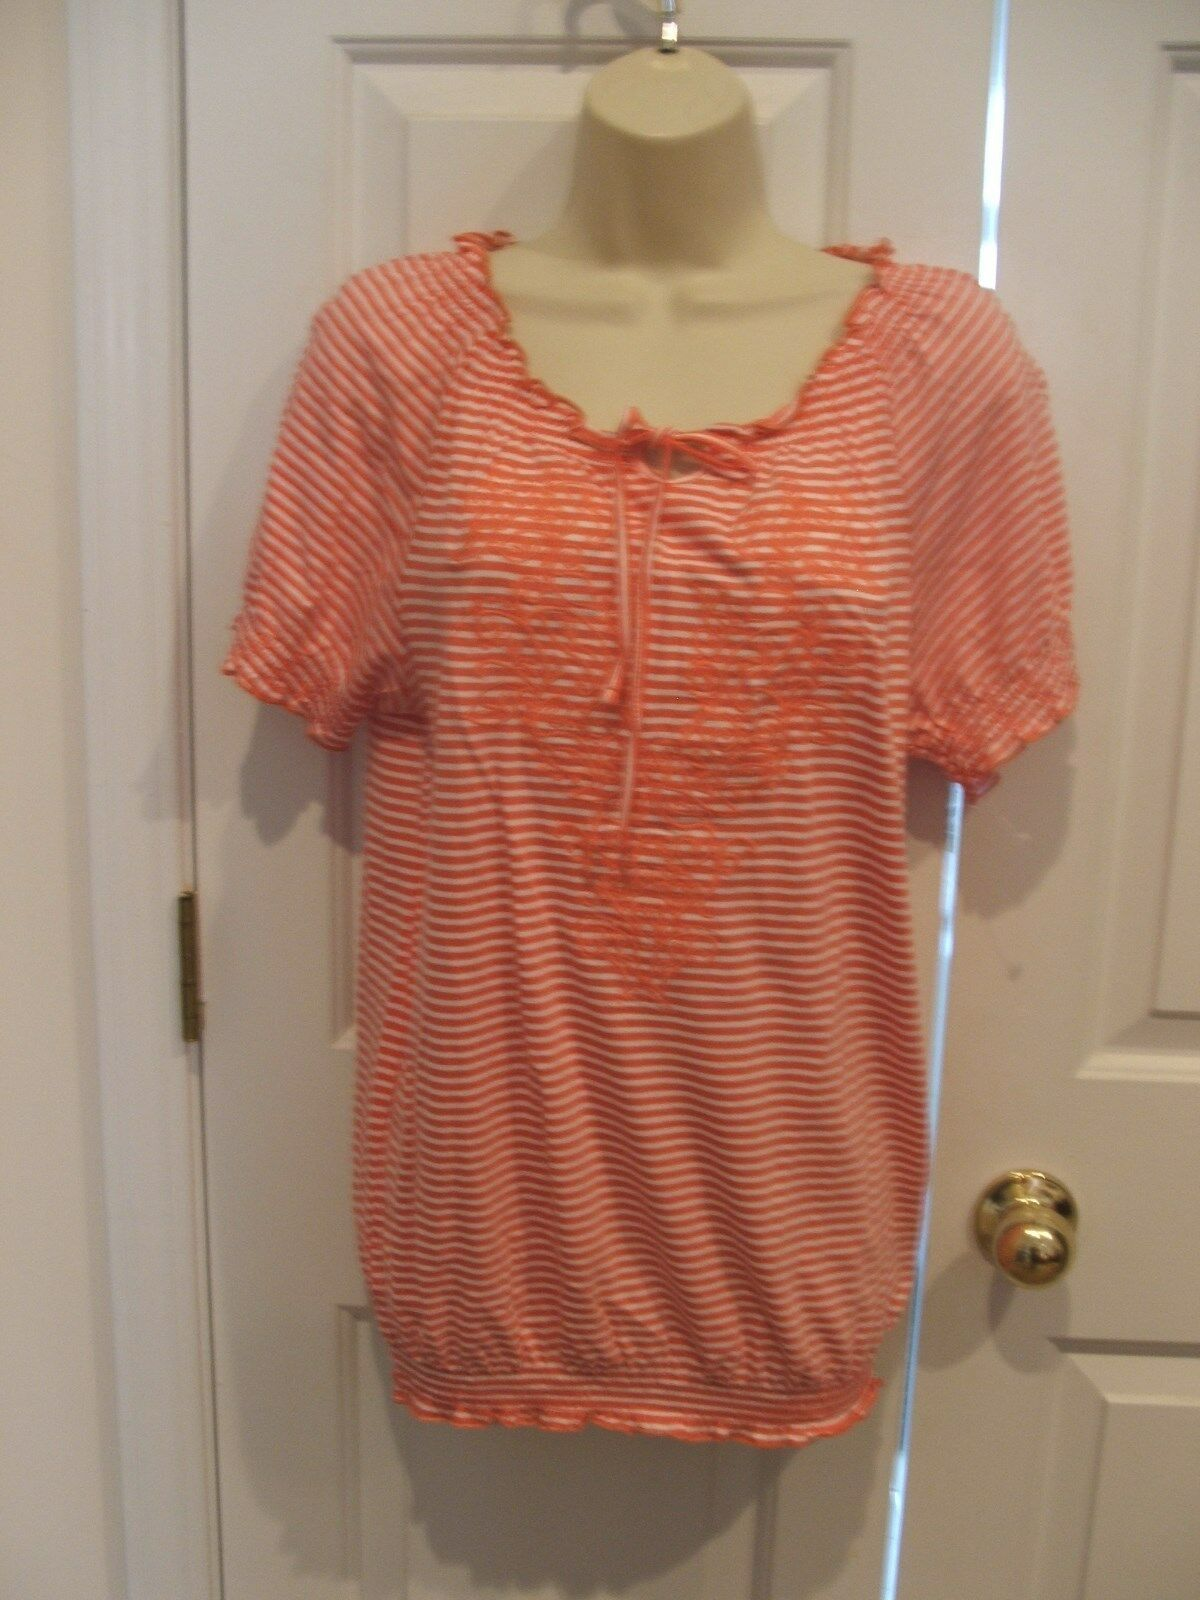 Primary image for New faded glory orange striped short sleeve tunic top small 4-6